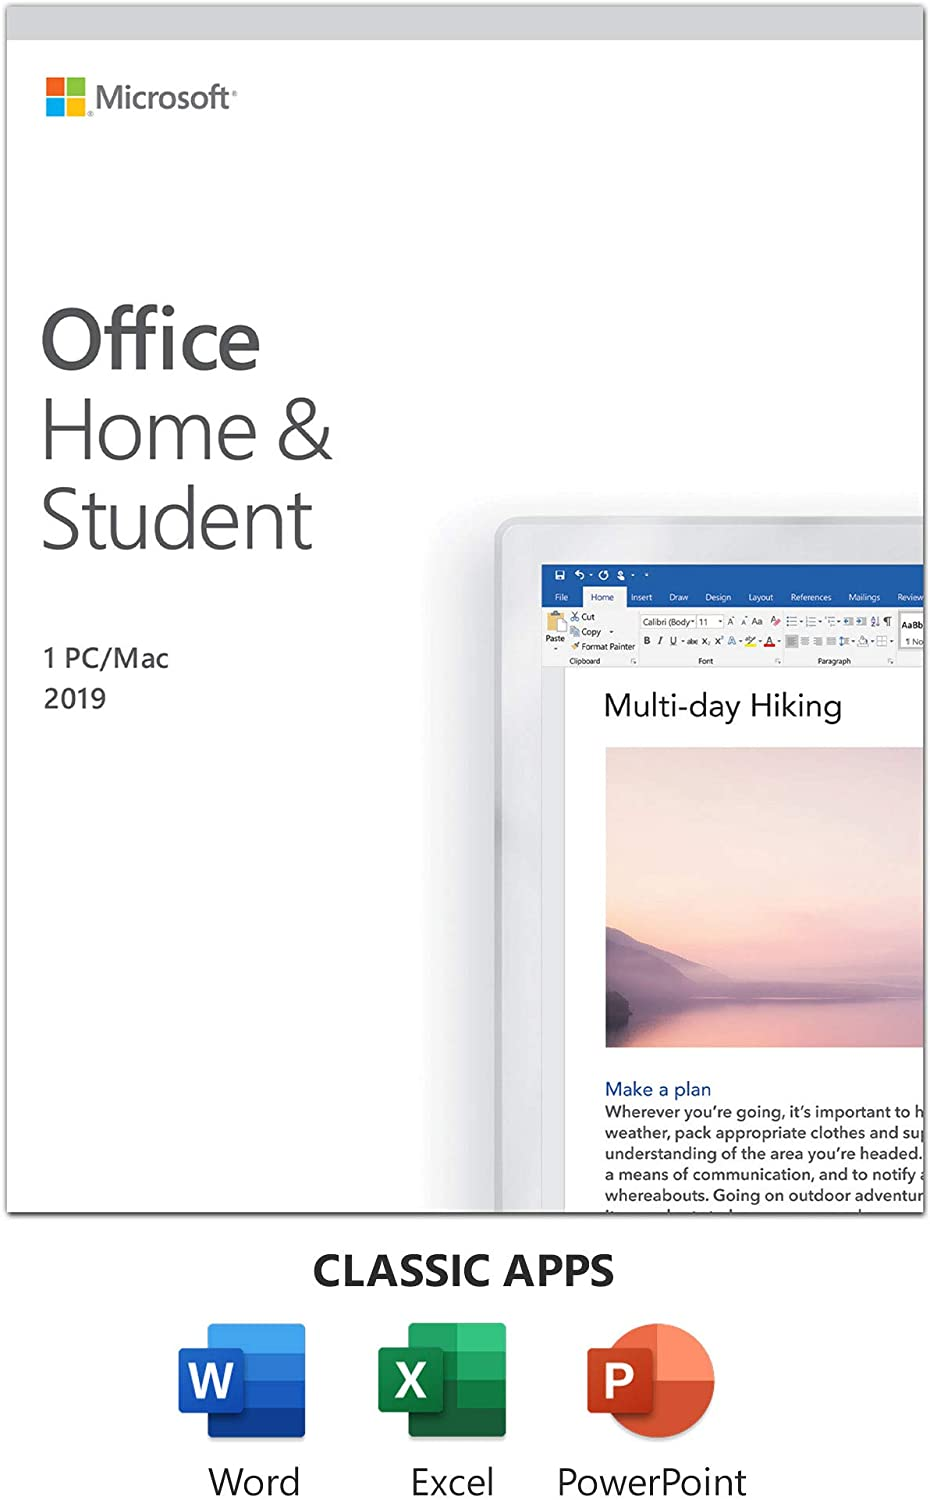 Microsoft Office Mac Home and Student promo